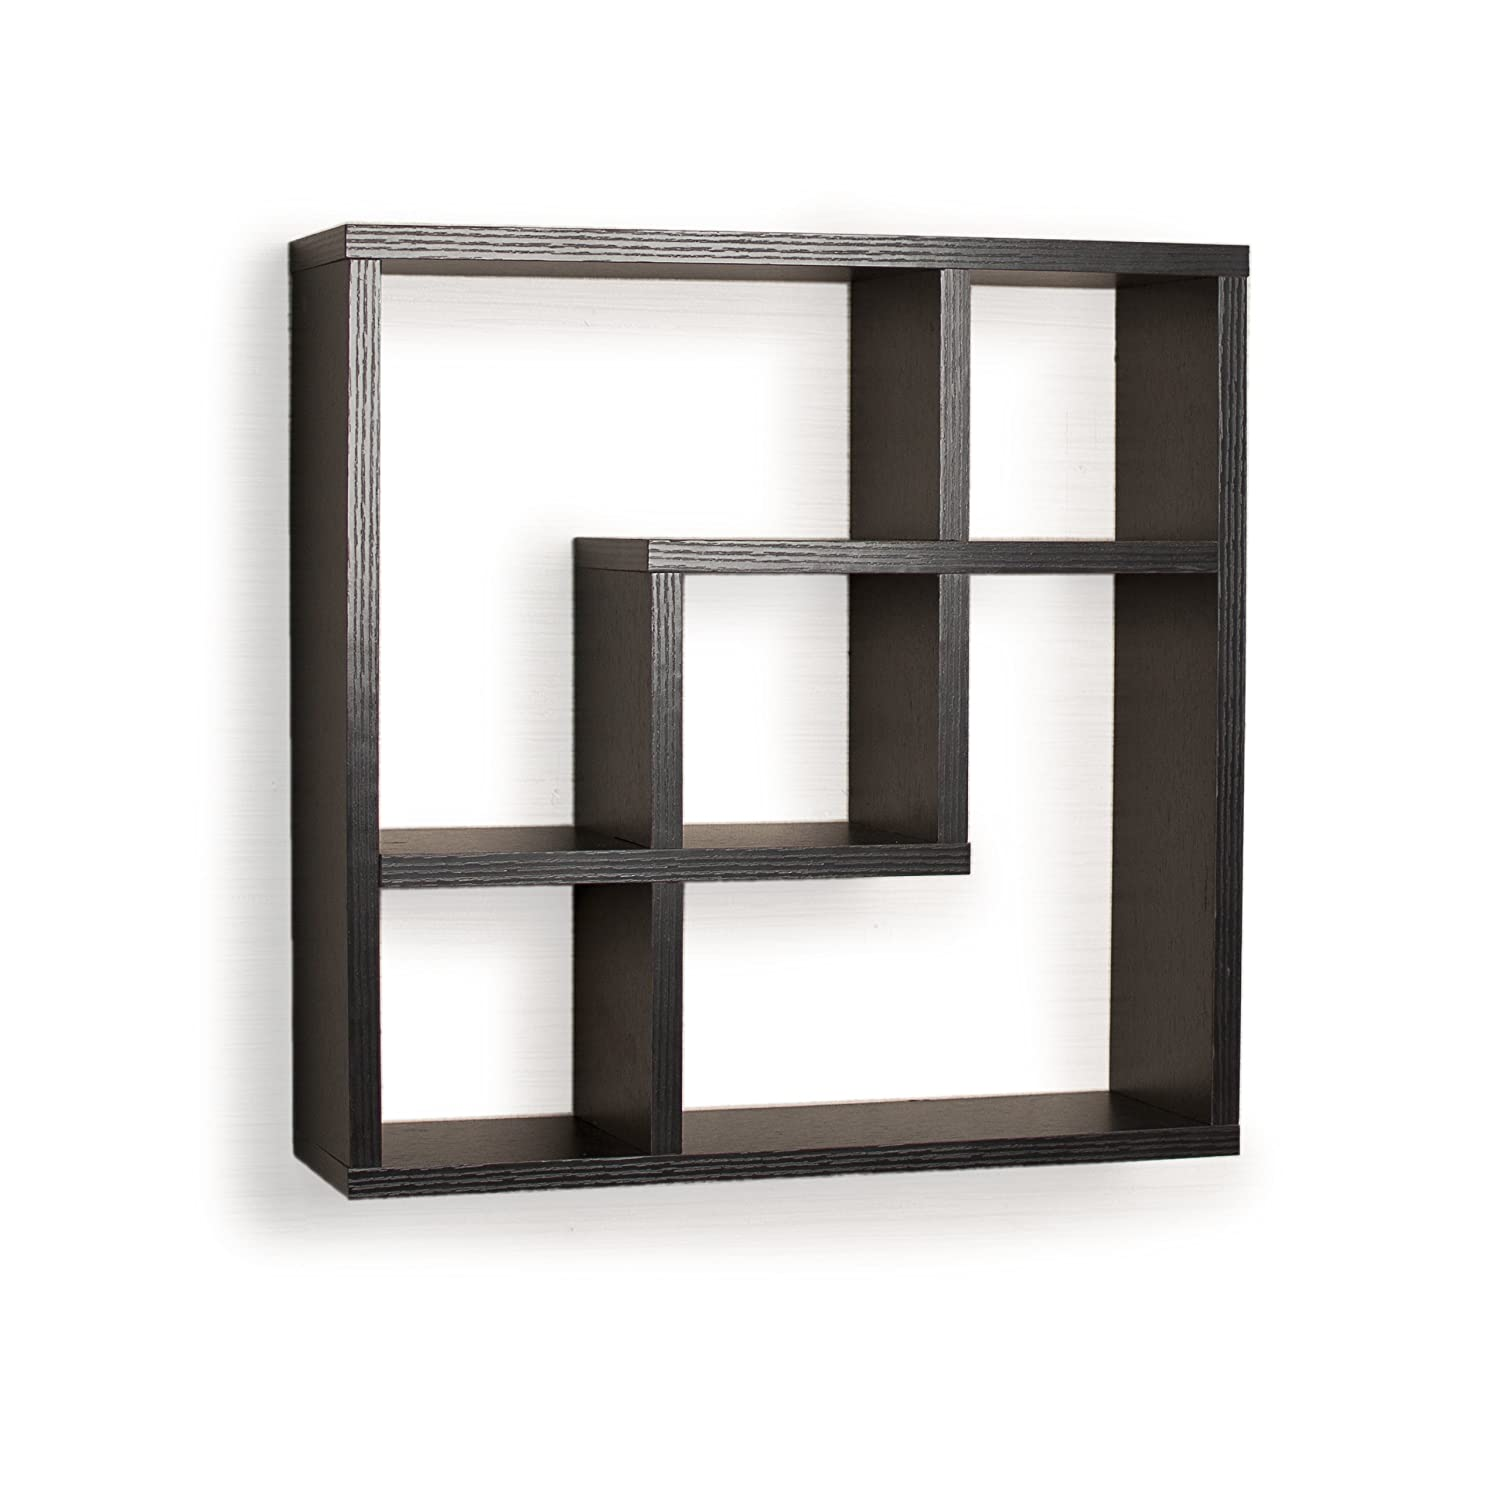 Amazon.com: Geometric Square Wall Shelf with 5 Openings: Home & Kitchen